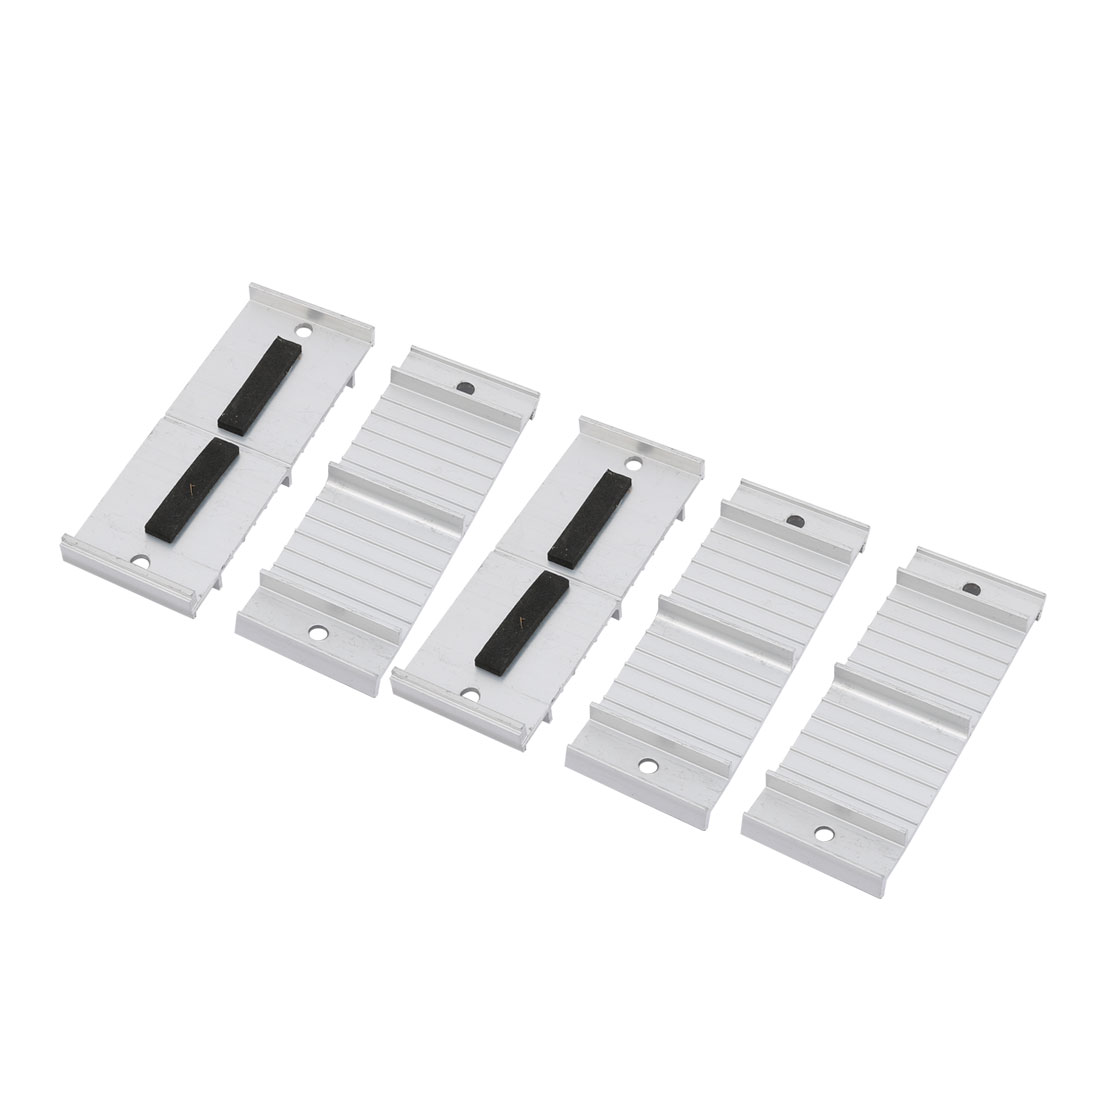 5Pcs Aluminum Alloy 105mmx40mmx15mm Cable Holder Wire Organizer for Home Office